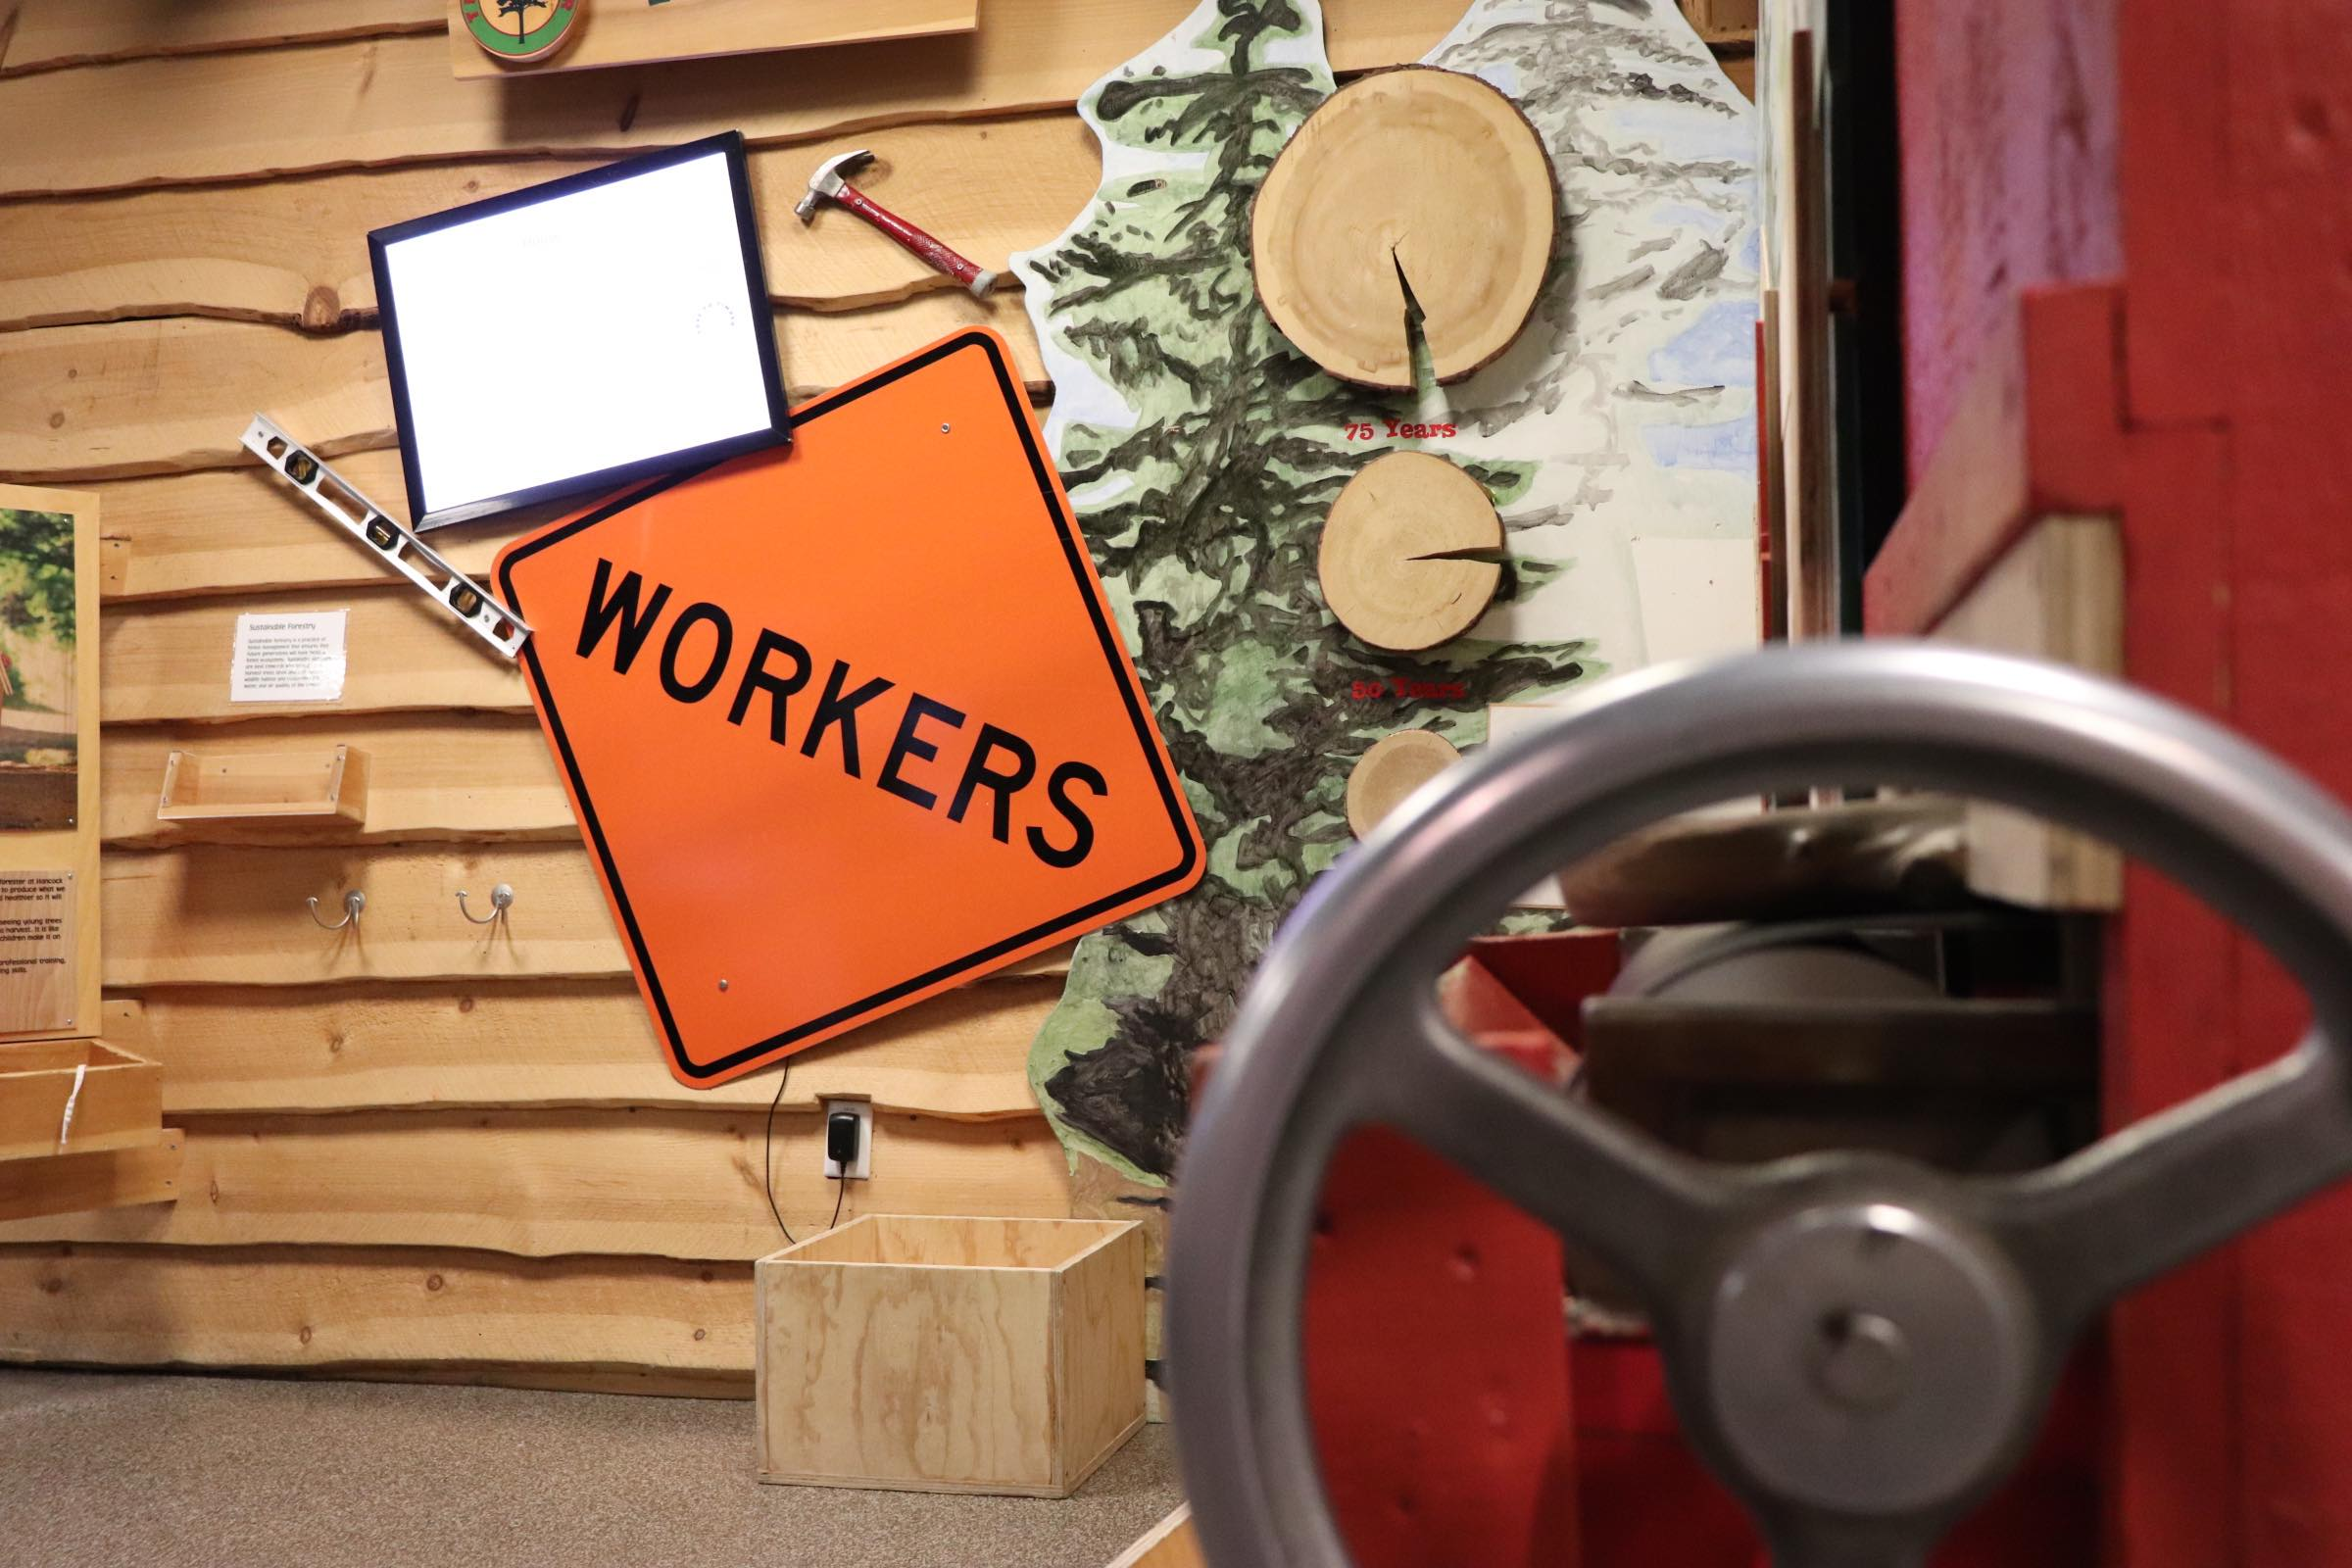 Workers sign and wheel in Construction Zone of Tree to TImber (Photo By Simone Verria).jpg